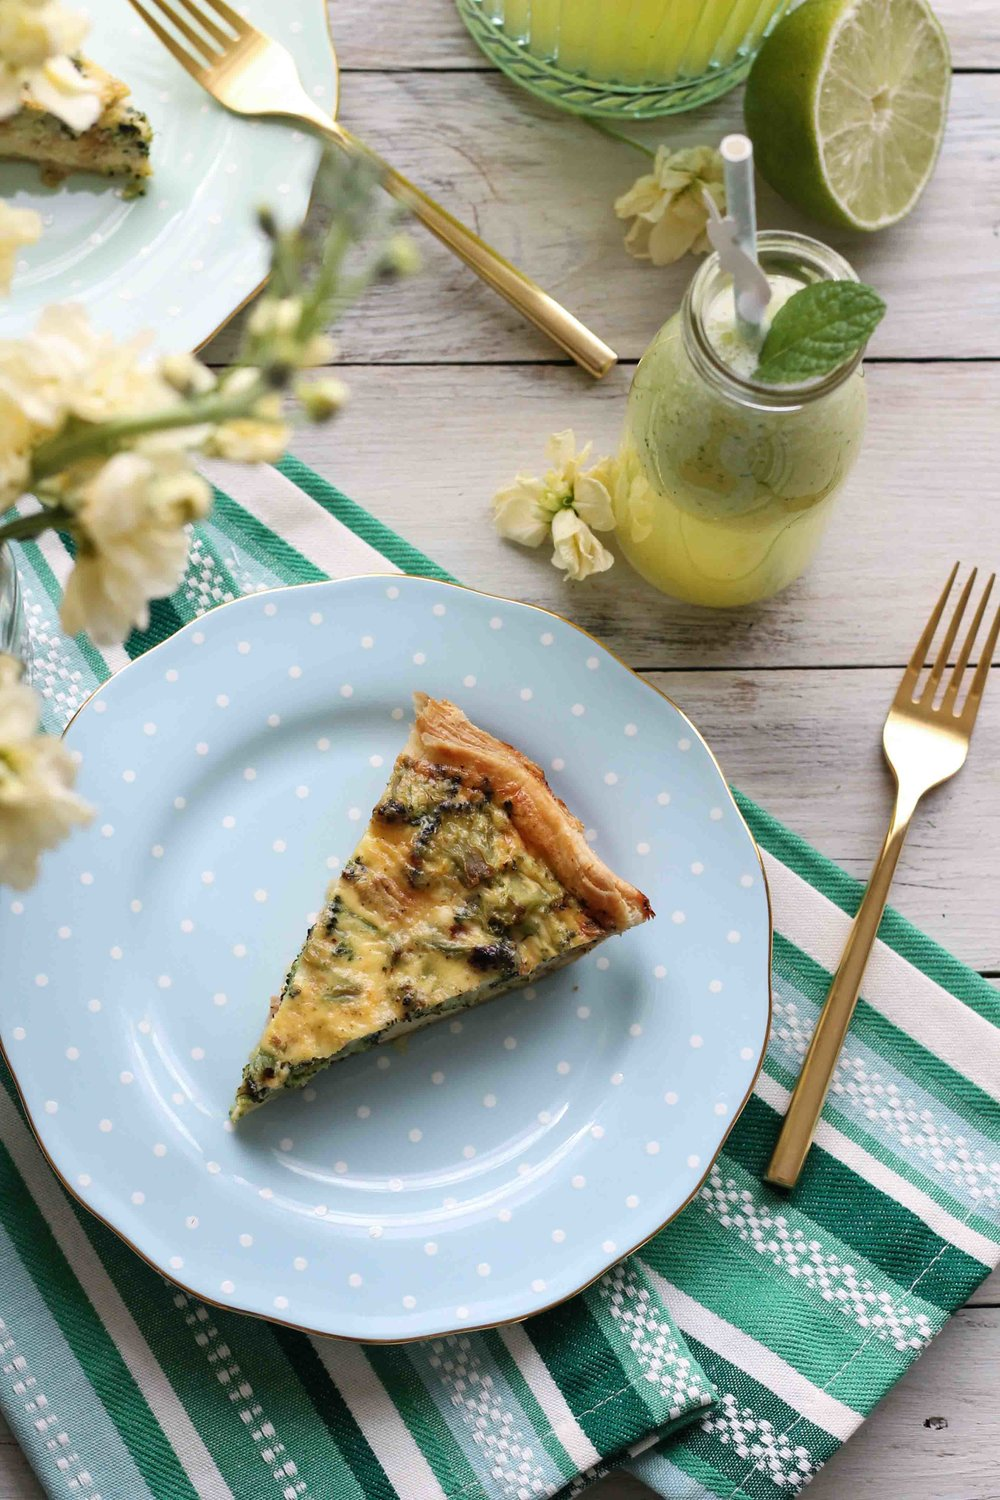 A simple and hearty quiche perfect for Easter Brunch!